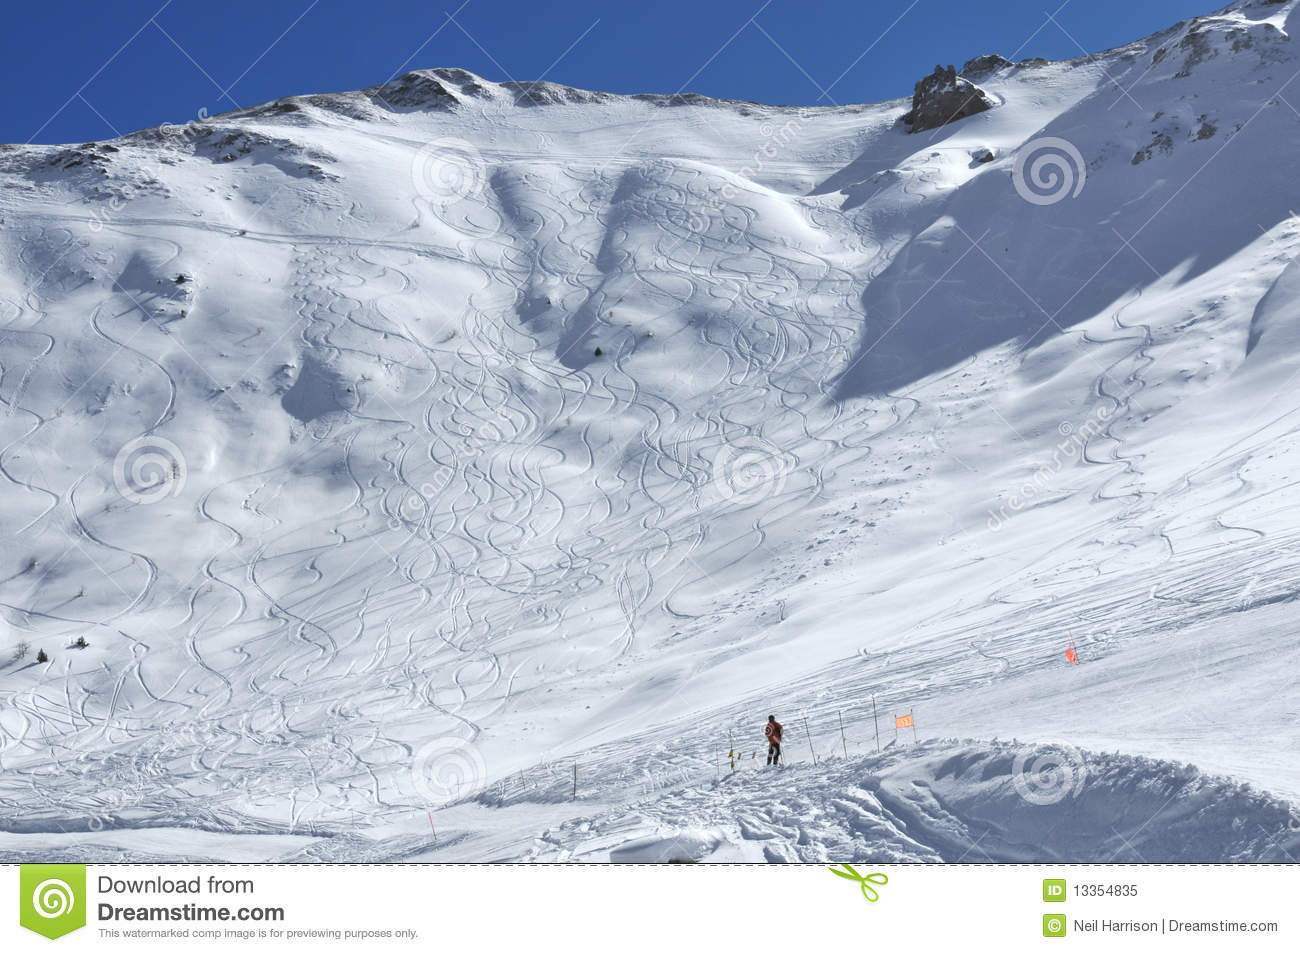 Off trail skiing